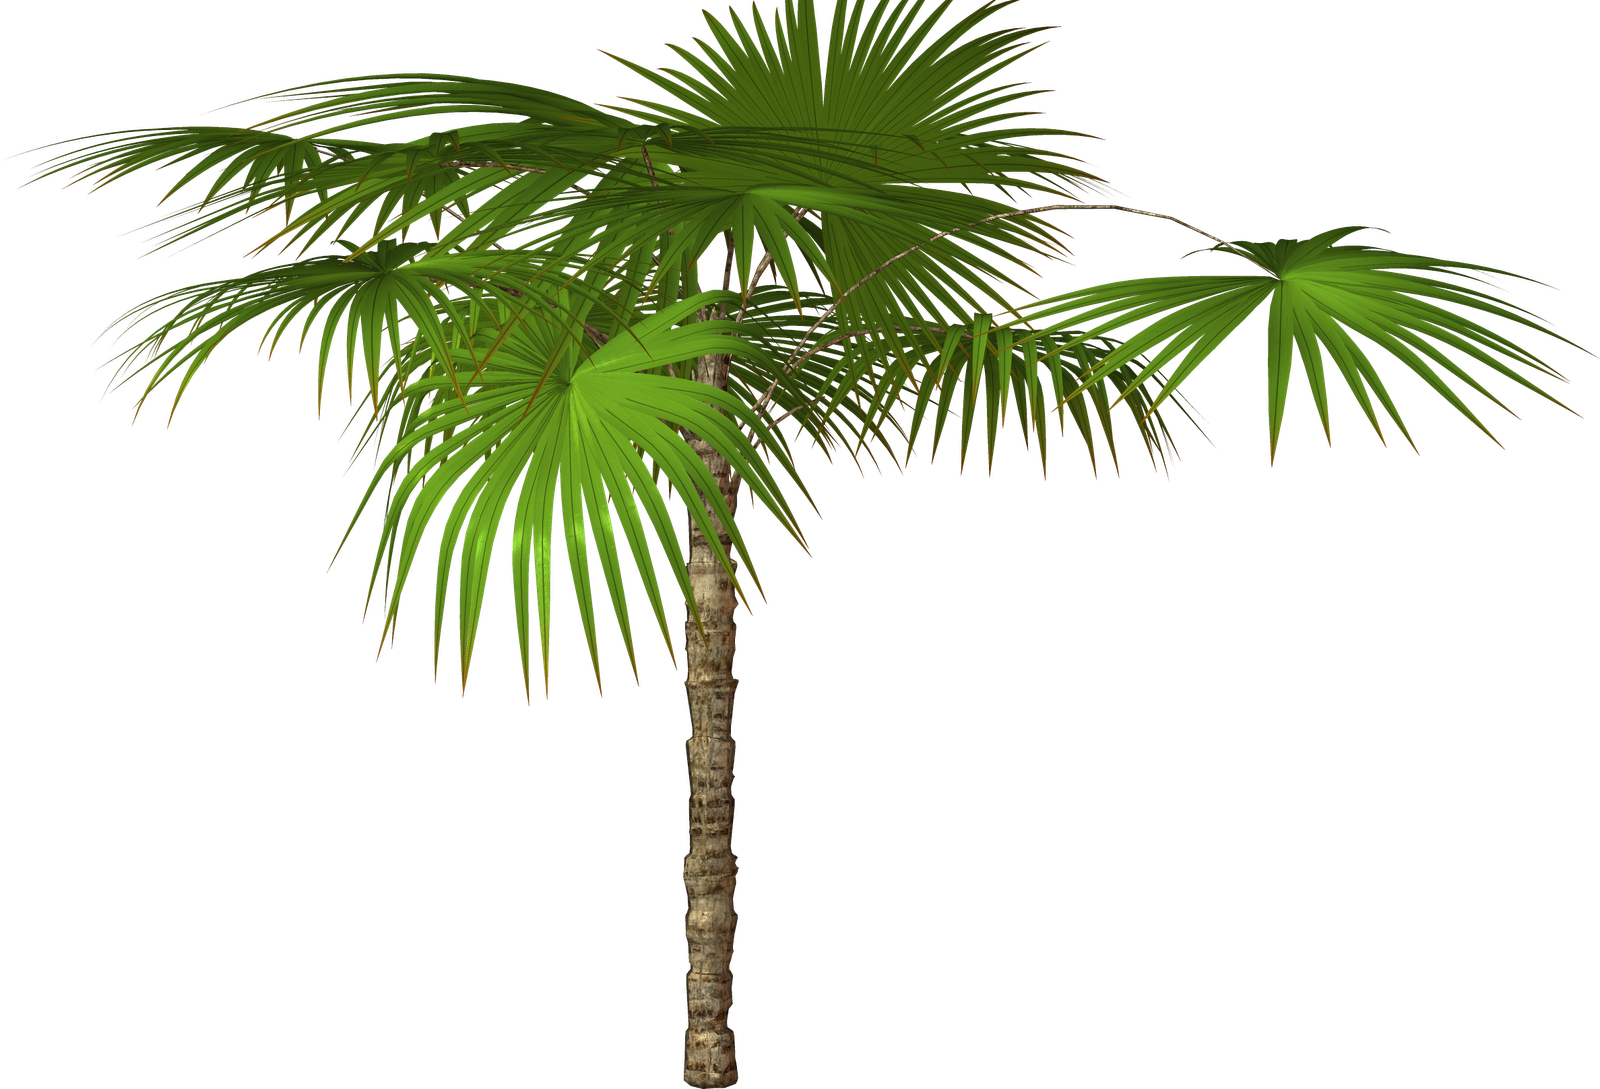 Palm Tree Transparent Background Png image #31897